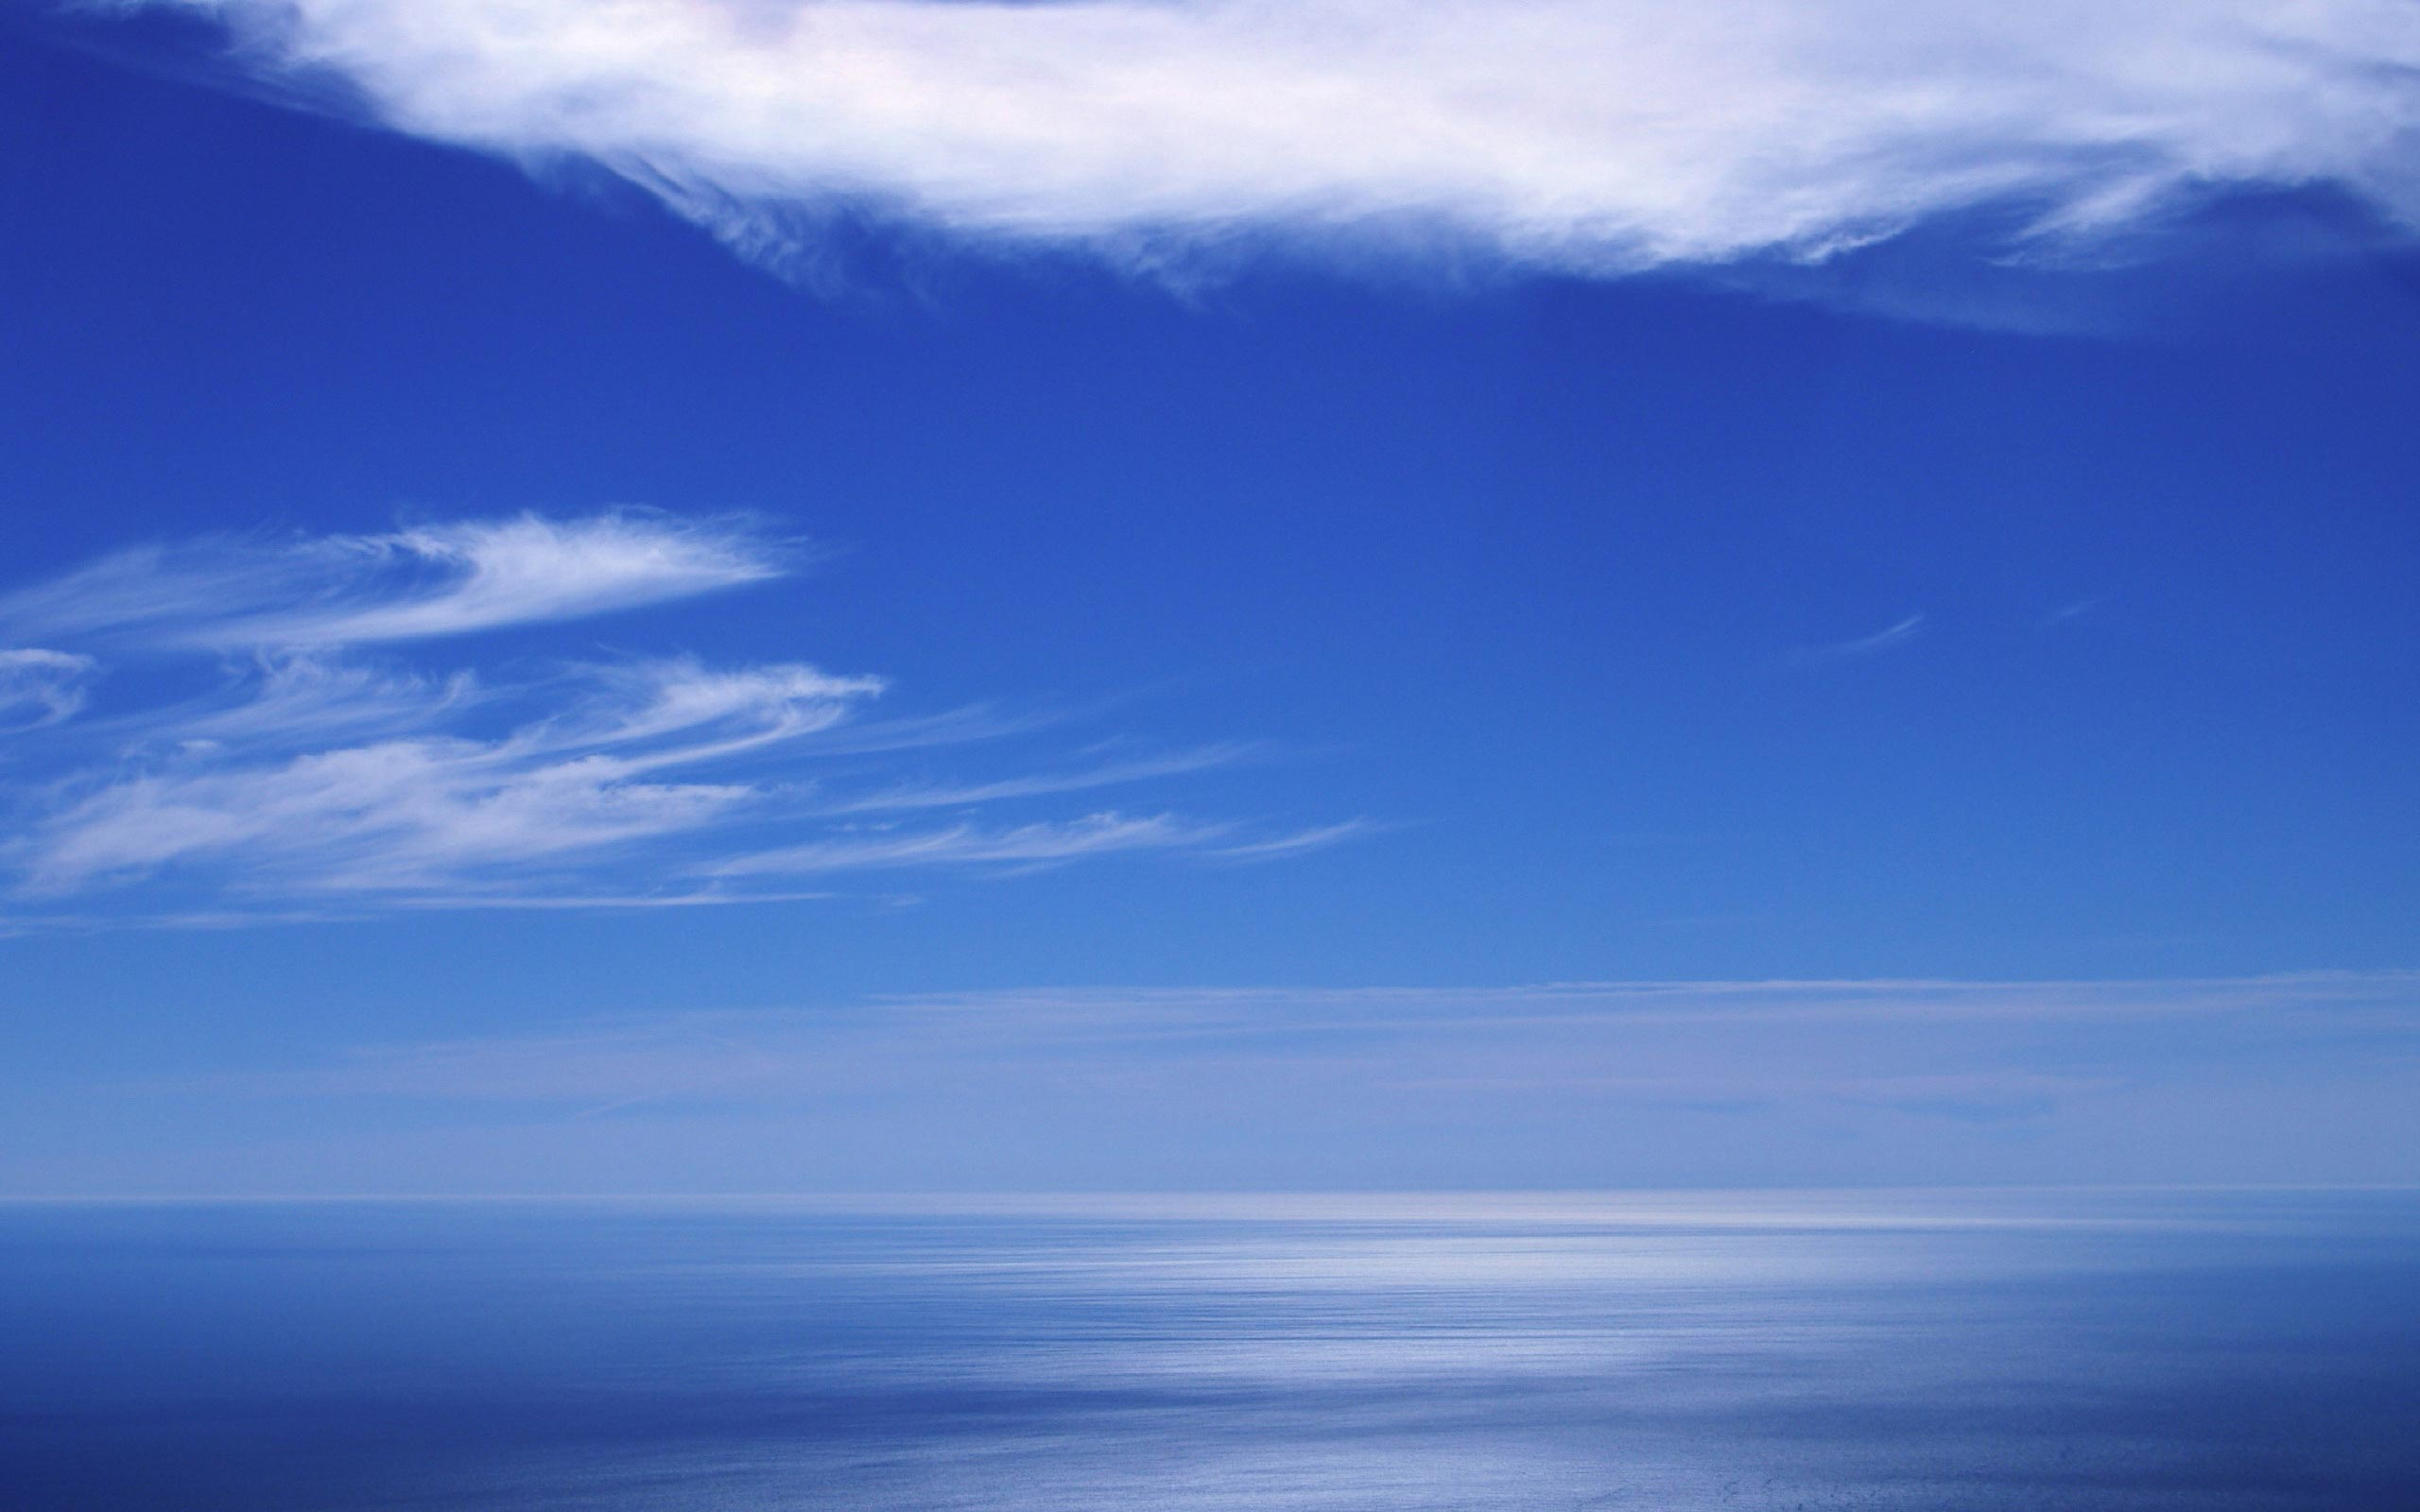 sky wallpaper blue